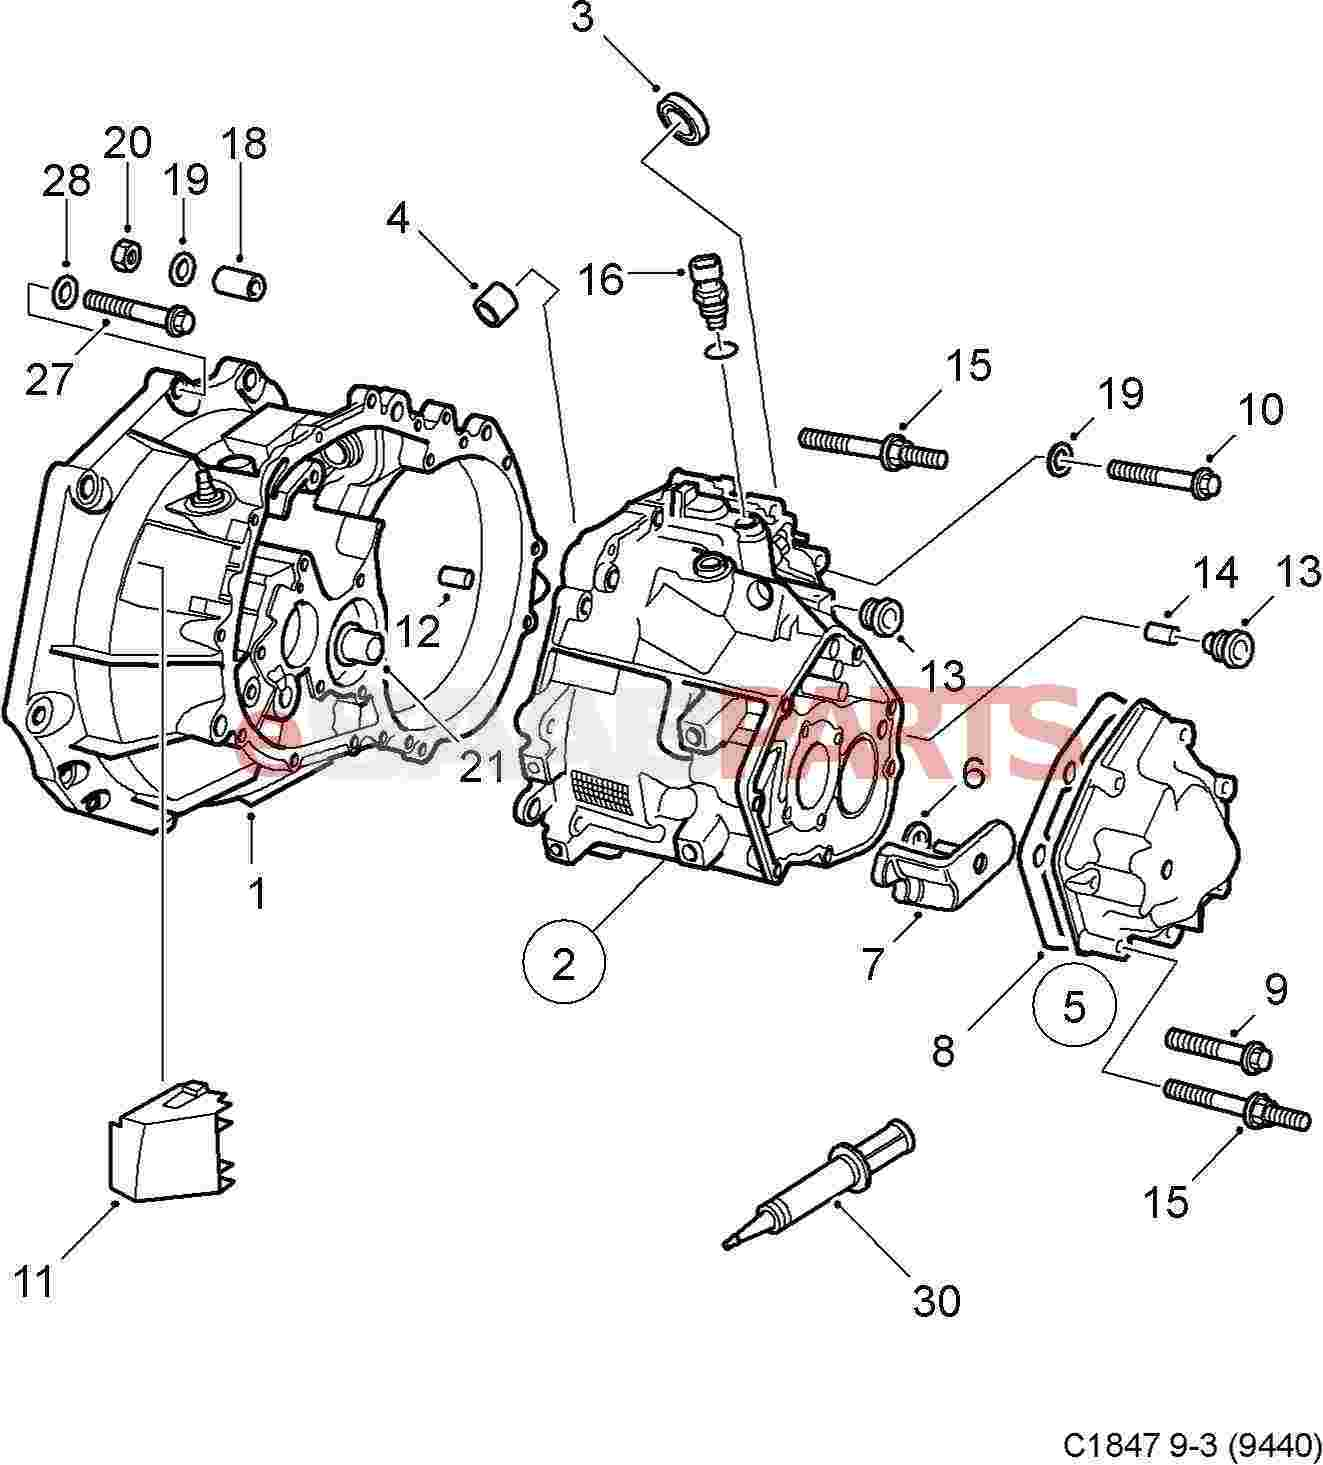 1996 Saab 900 Transmission Parts Diagram moreover Carburador Motor 2e moreover Saturn Ion 2 Engine Diagram furthermore Saab 9 3 V6 Engine Diagram in addition Saab 9 3 Parts Diagram. on 2003 saab 9 5 turbo